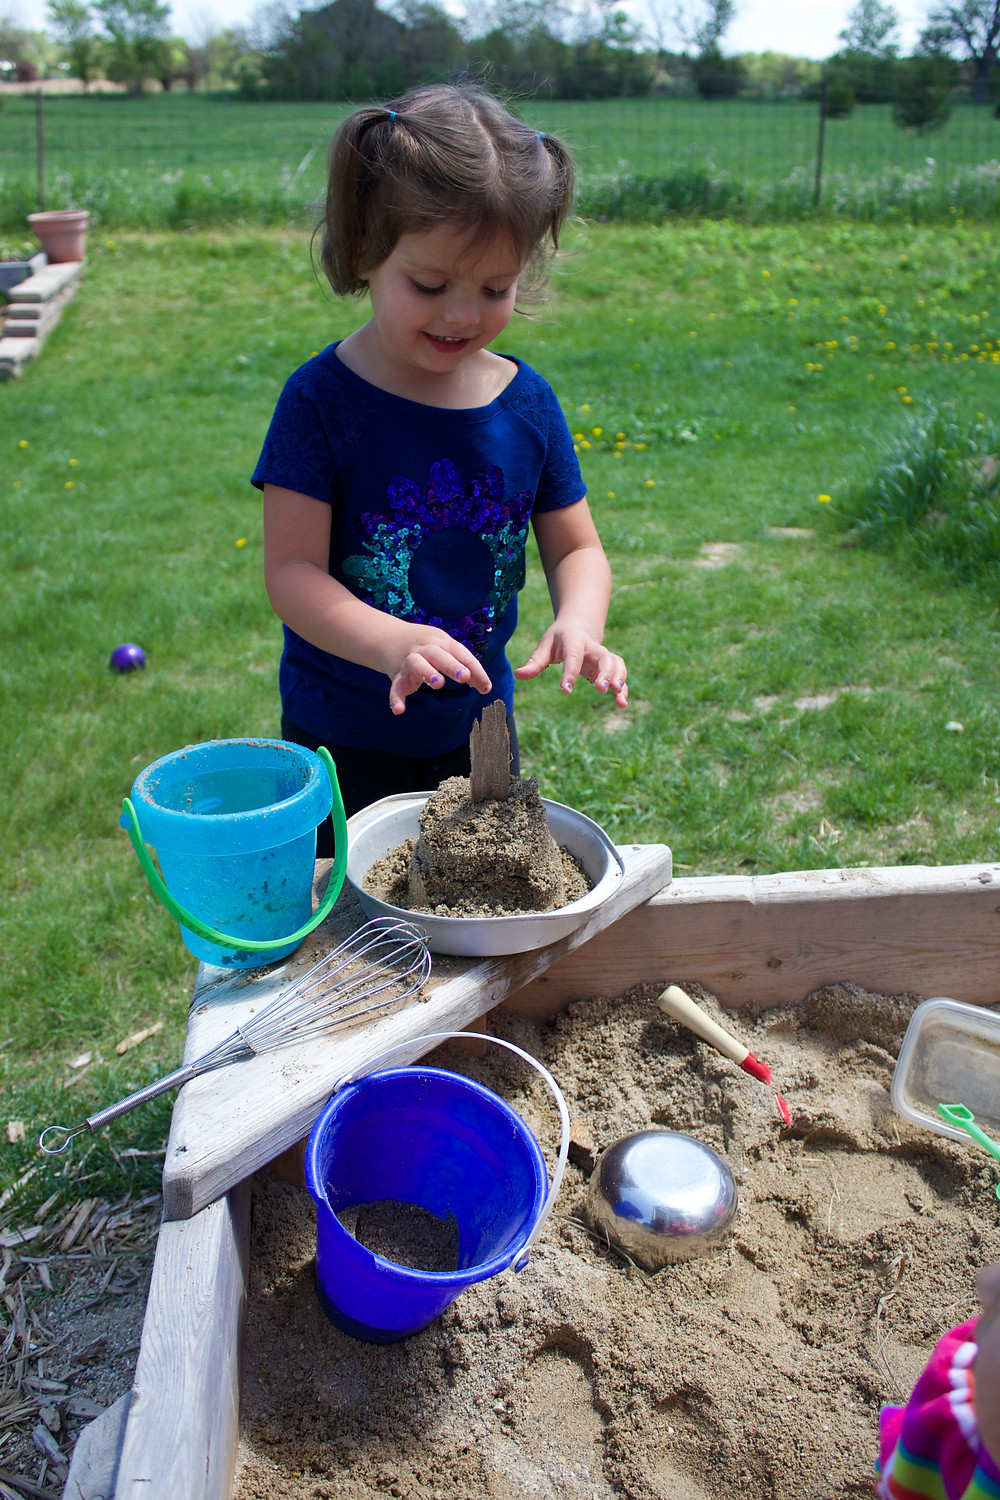 Outdoor play at Blue Sky Daycare home daycare